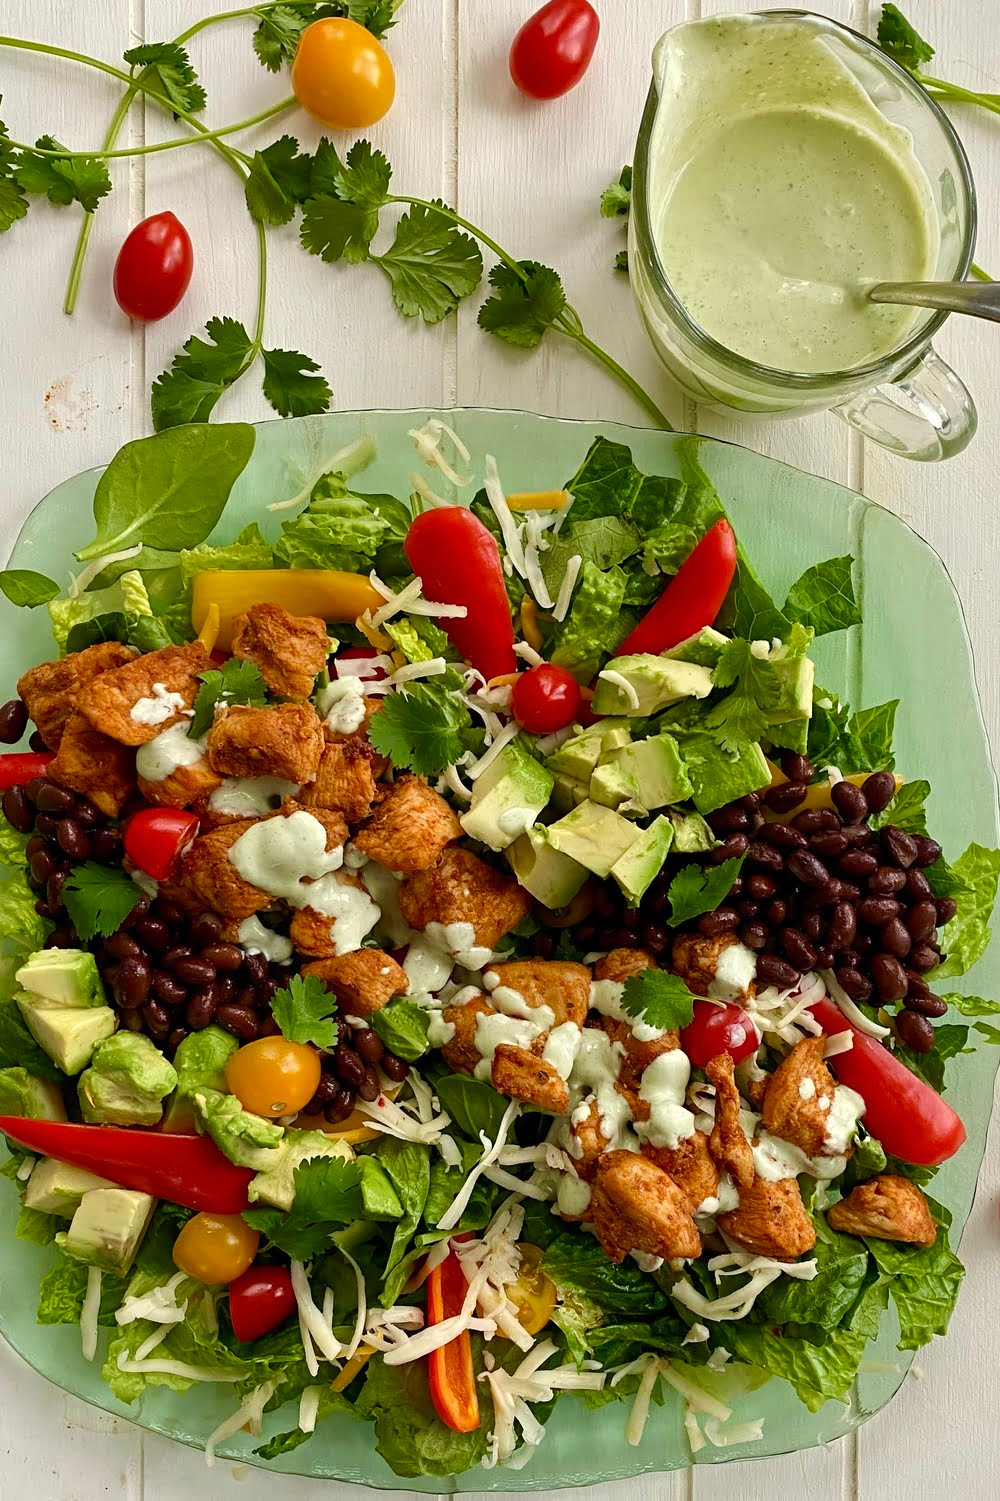 an entrée Southwest Salad with chicken and lots of veggies